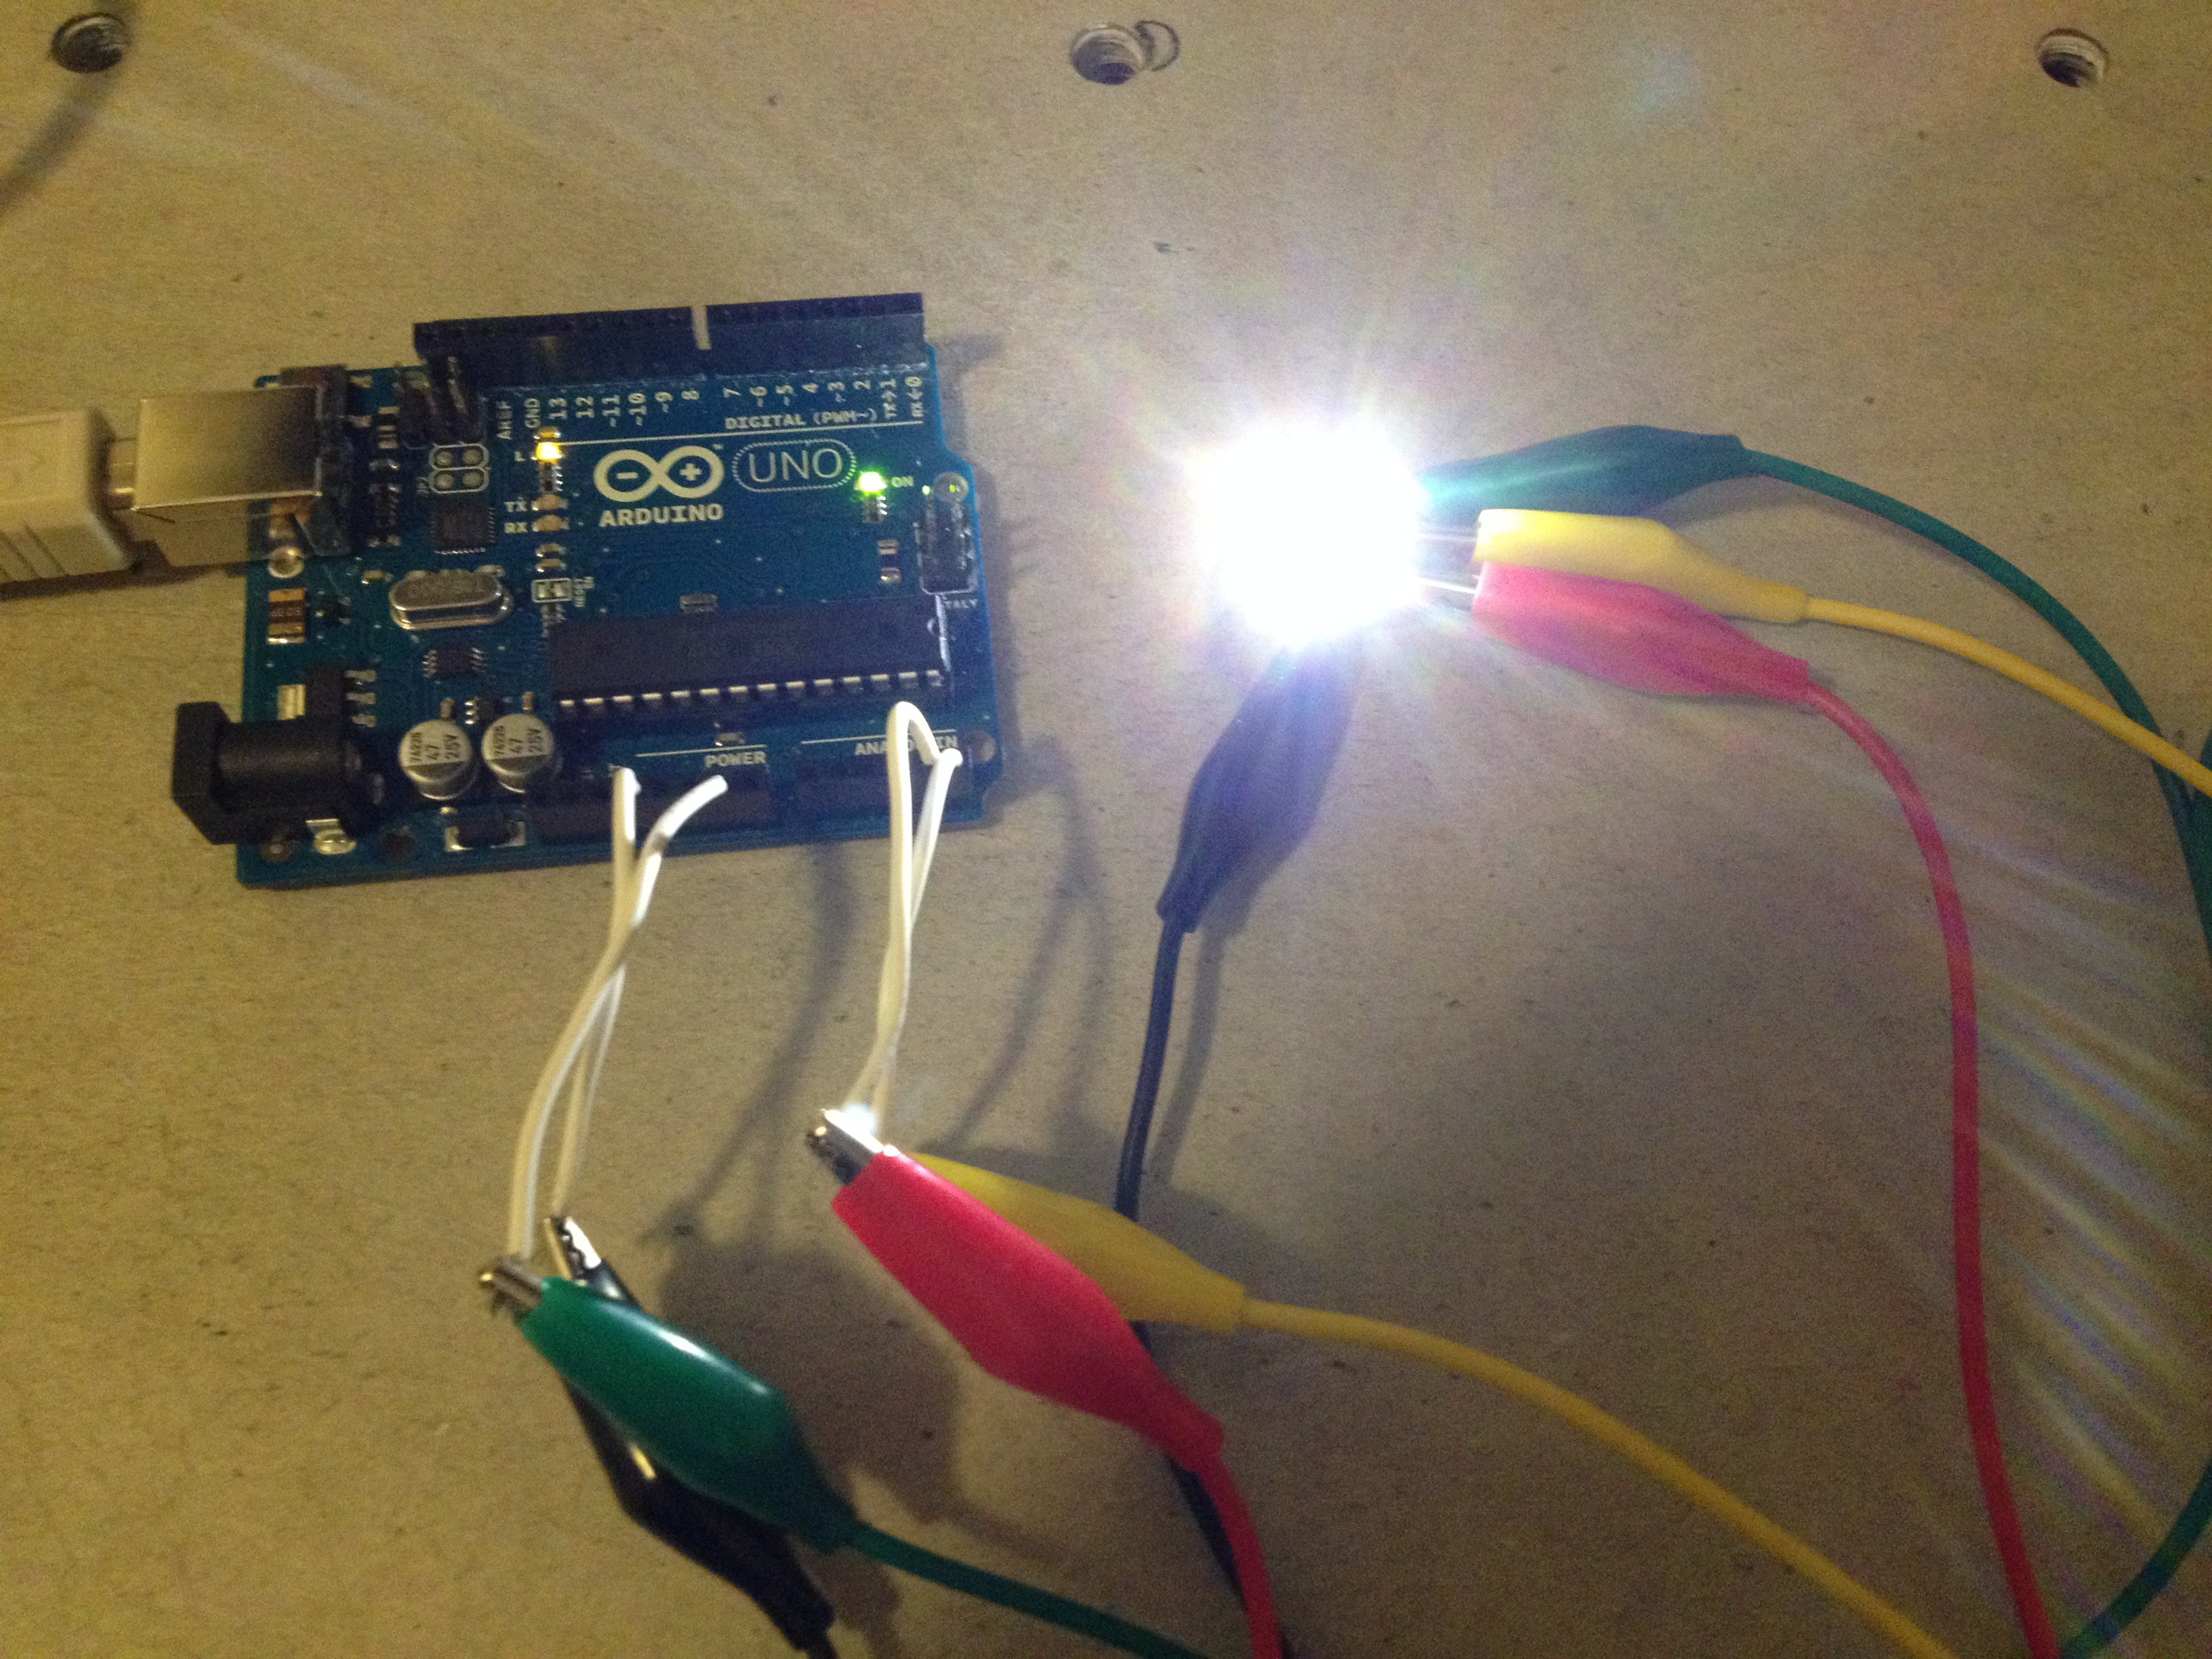 Physical Computing Arduino Colour Sensor Circuit If The Game Had Different Tones A Better Calibrating And Mapping System Would Have To Be Done So Wouldnt Make Any Mistakes